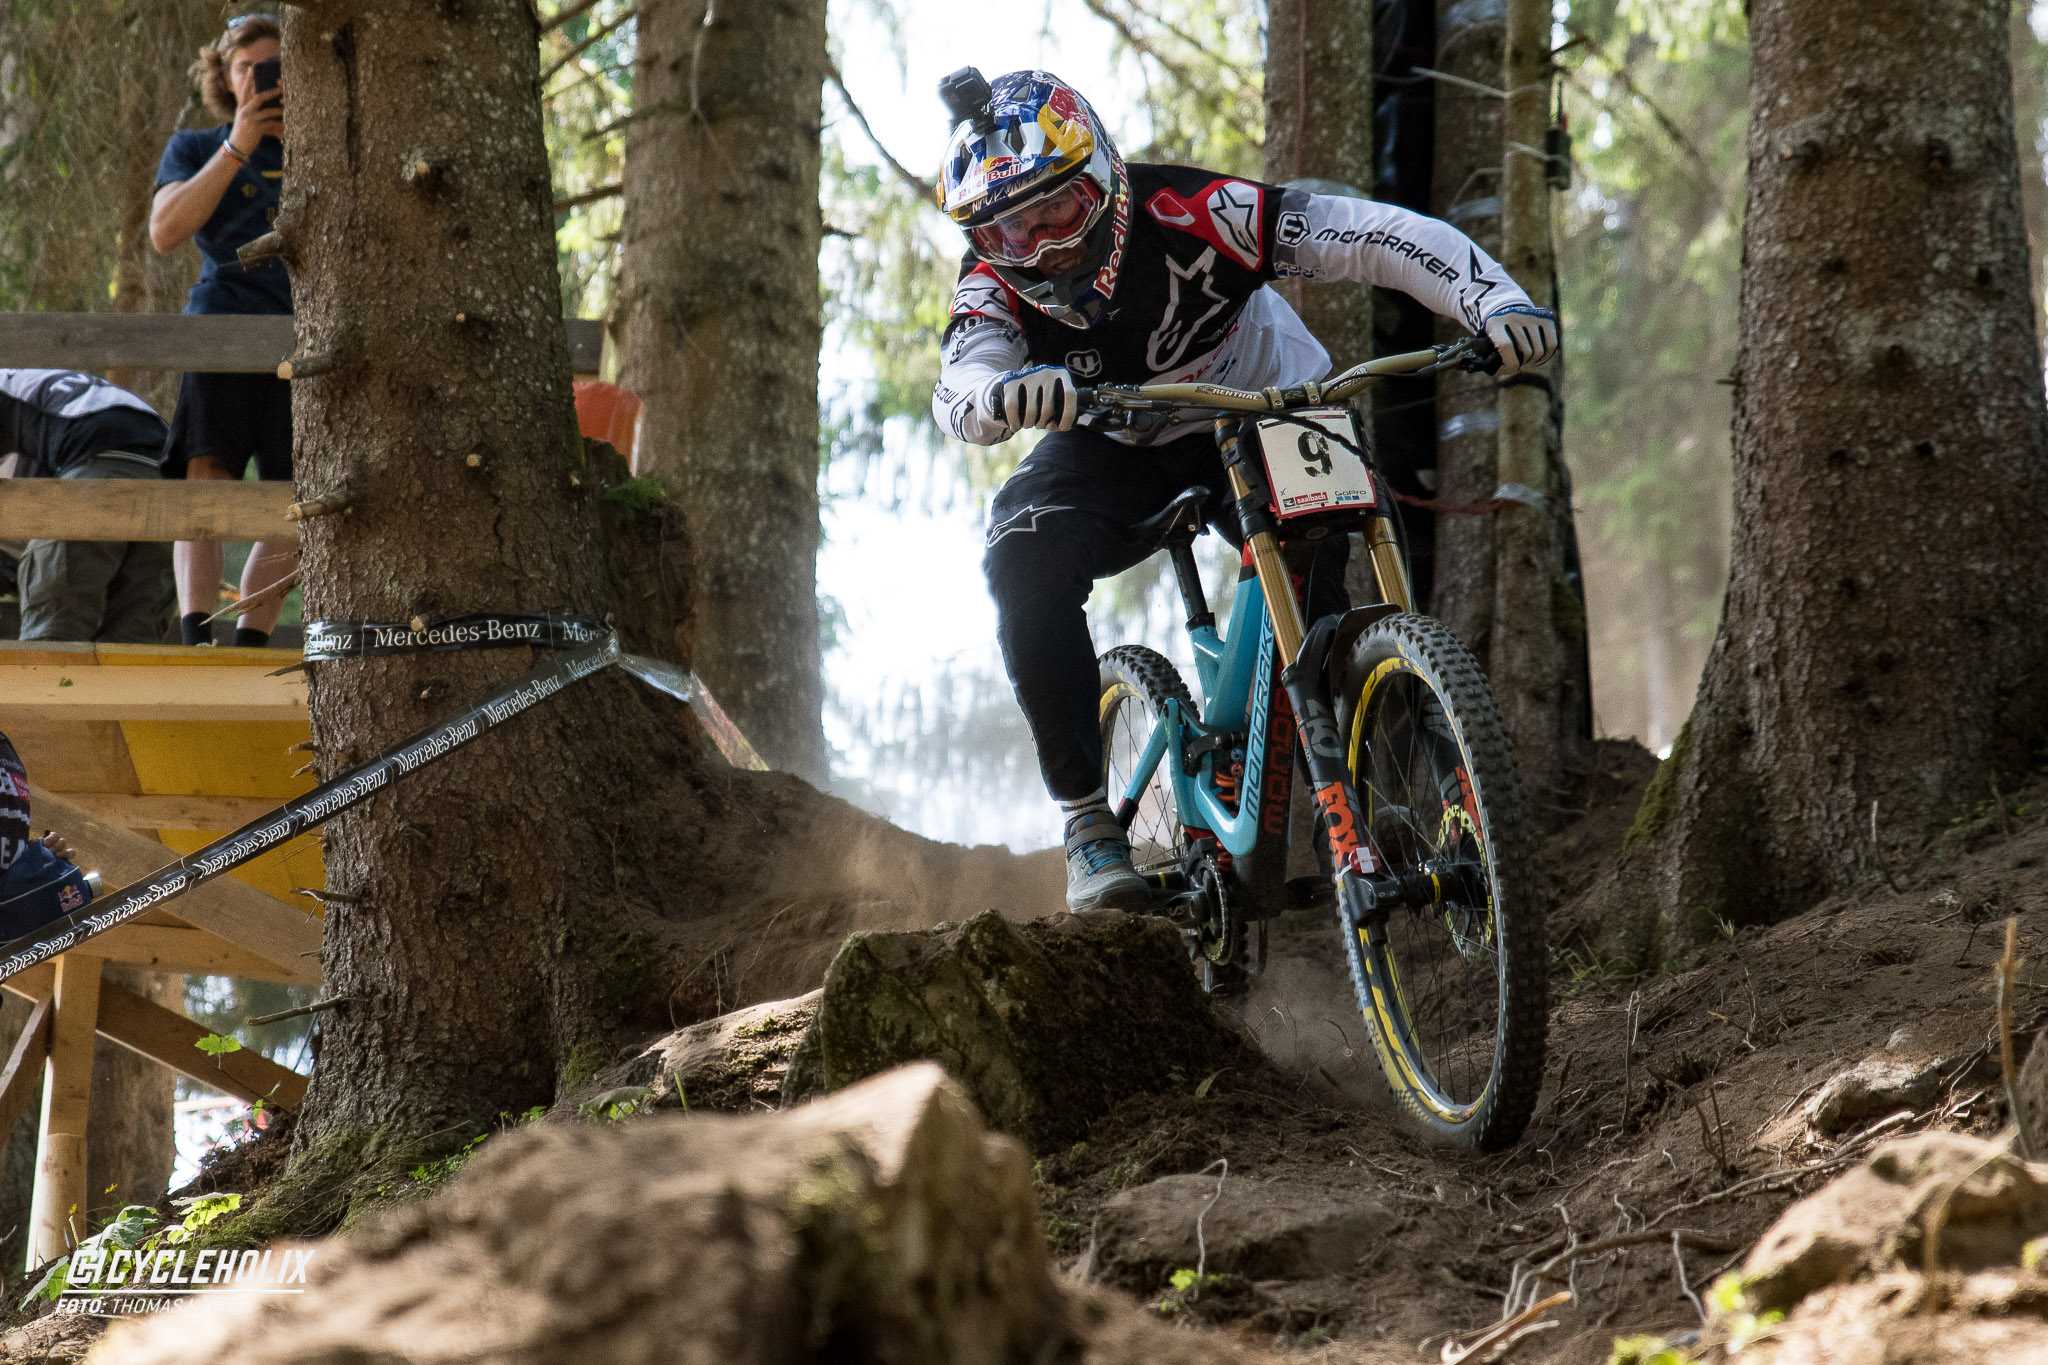 2019 Downhill Worldcup Leogang Finale Action 14